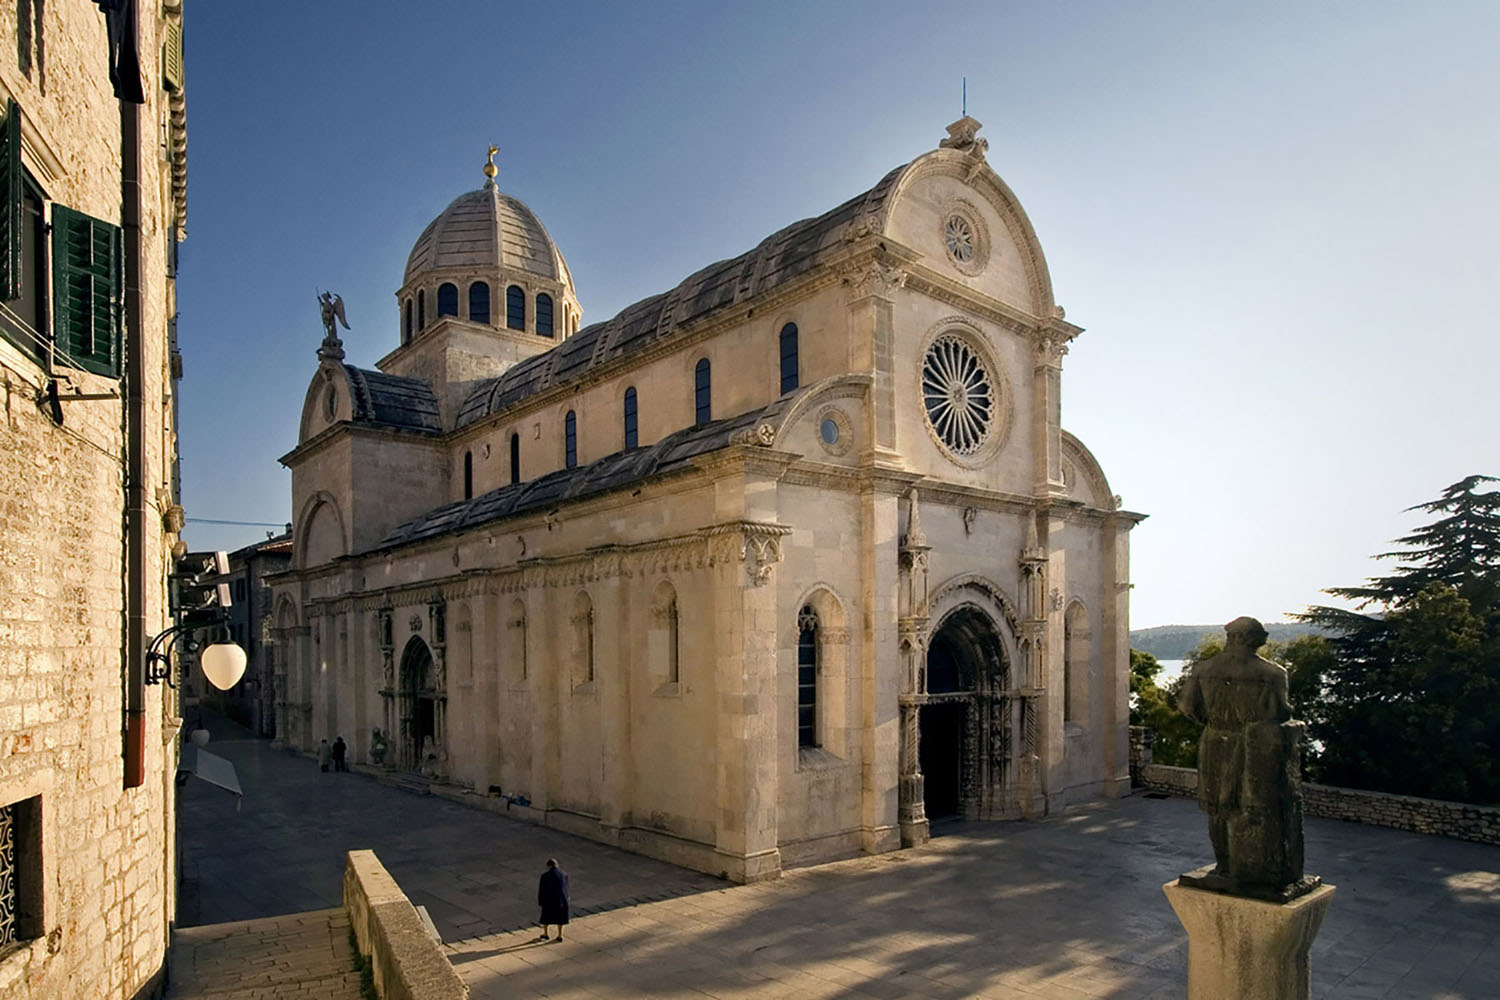 The Cathedral of St. James in Sibenik, Croatia.